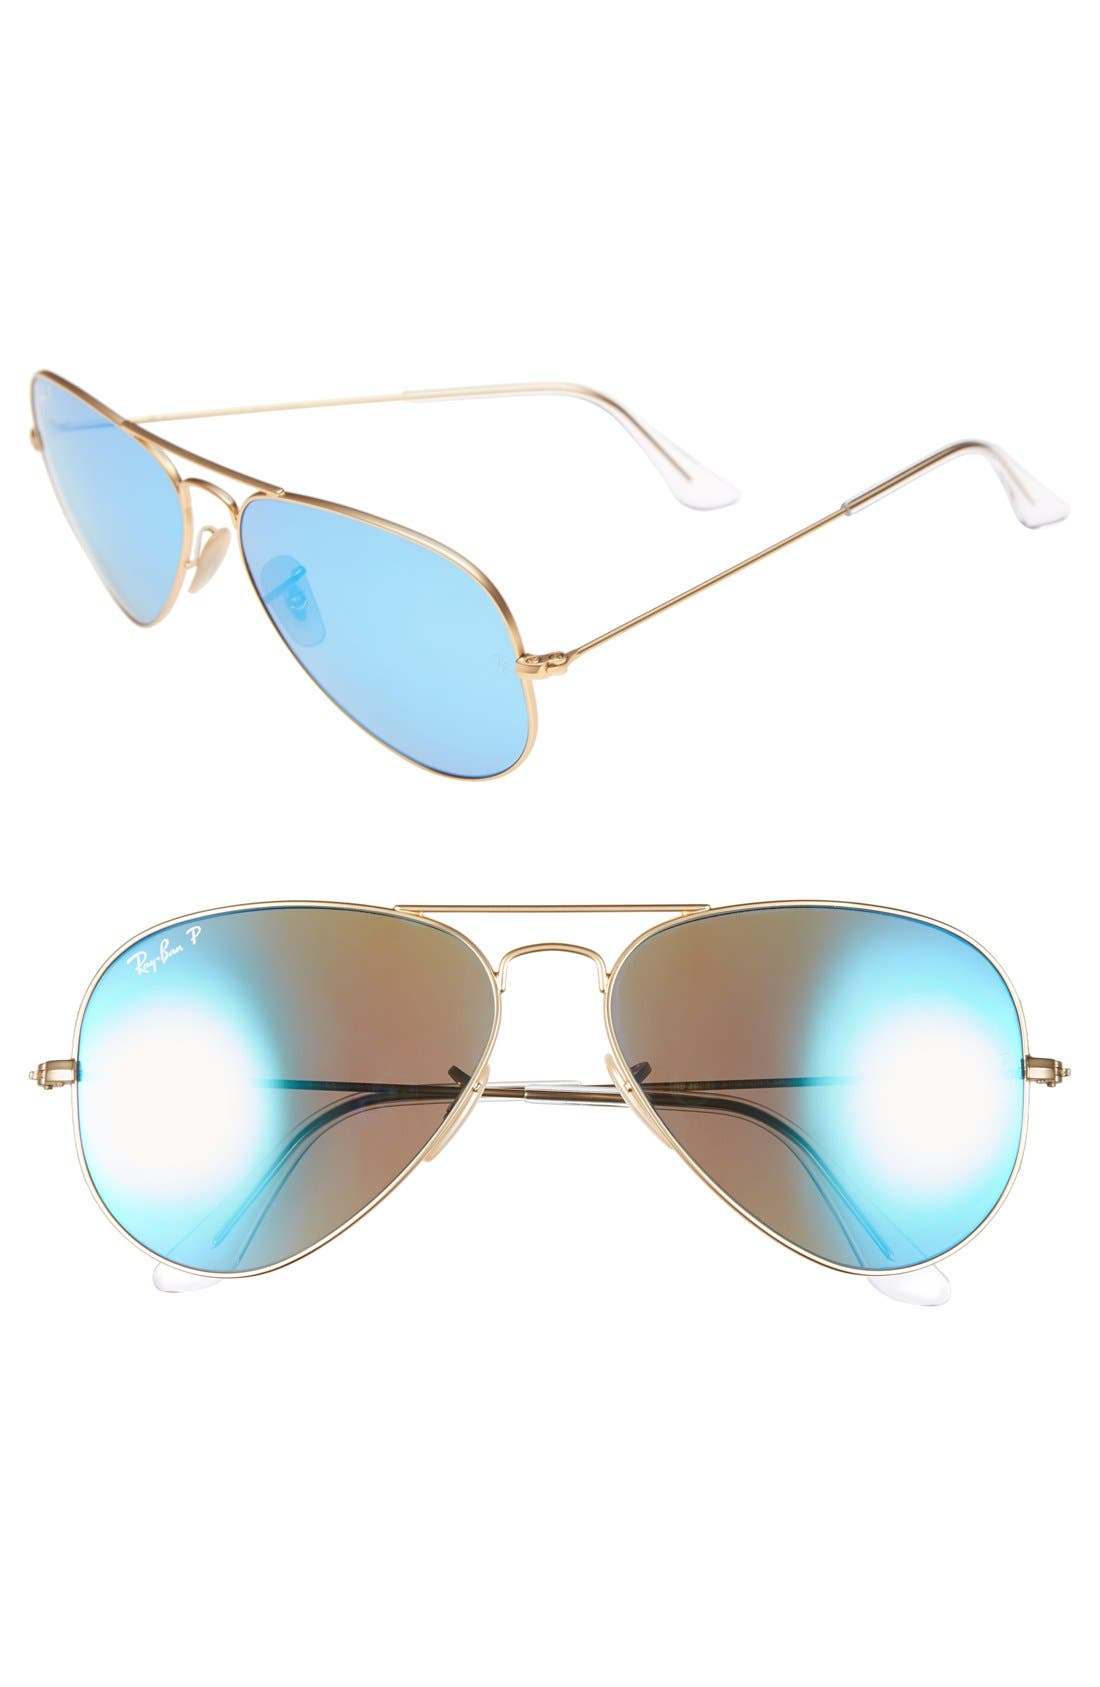 Standard Icons 58mm Mirrored Polarized Aviator Sunglasses,                         Main,                         color, Gold/ Blue Mirror